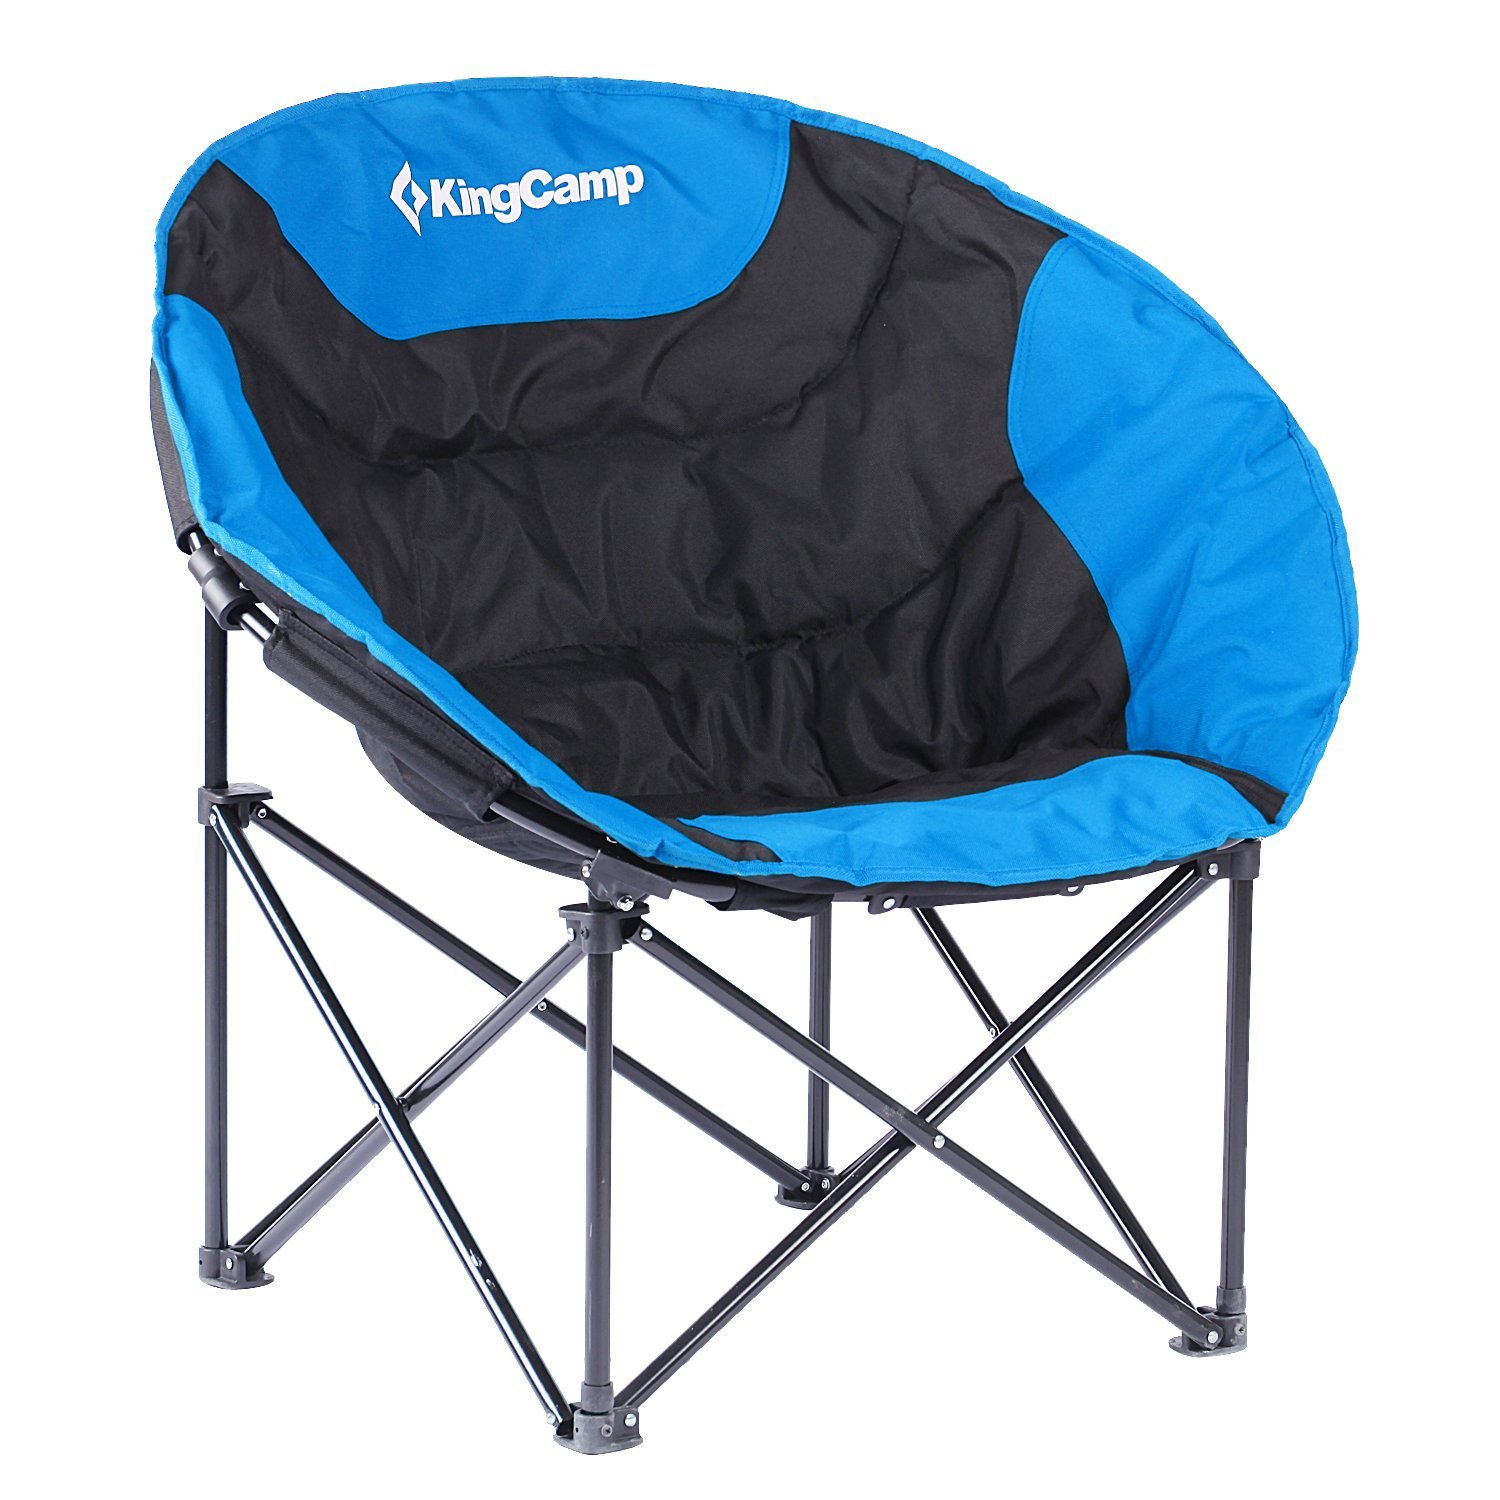 Camper Chairs 10 Best Ultimately Comfortable Camping Chairs Camping